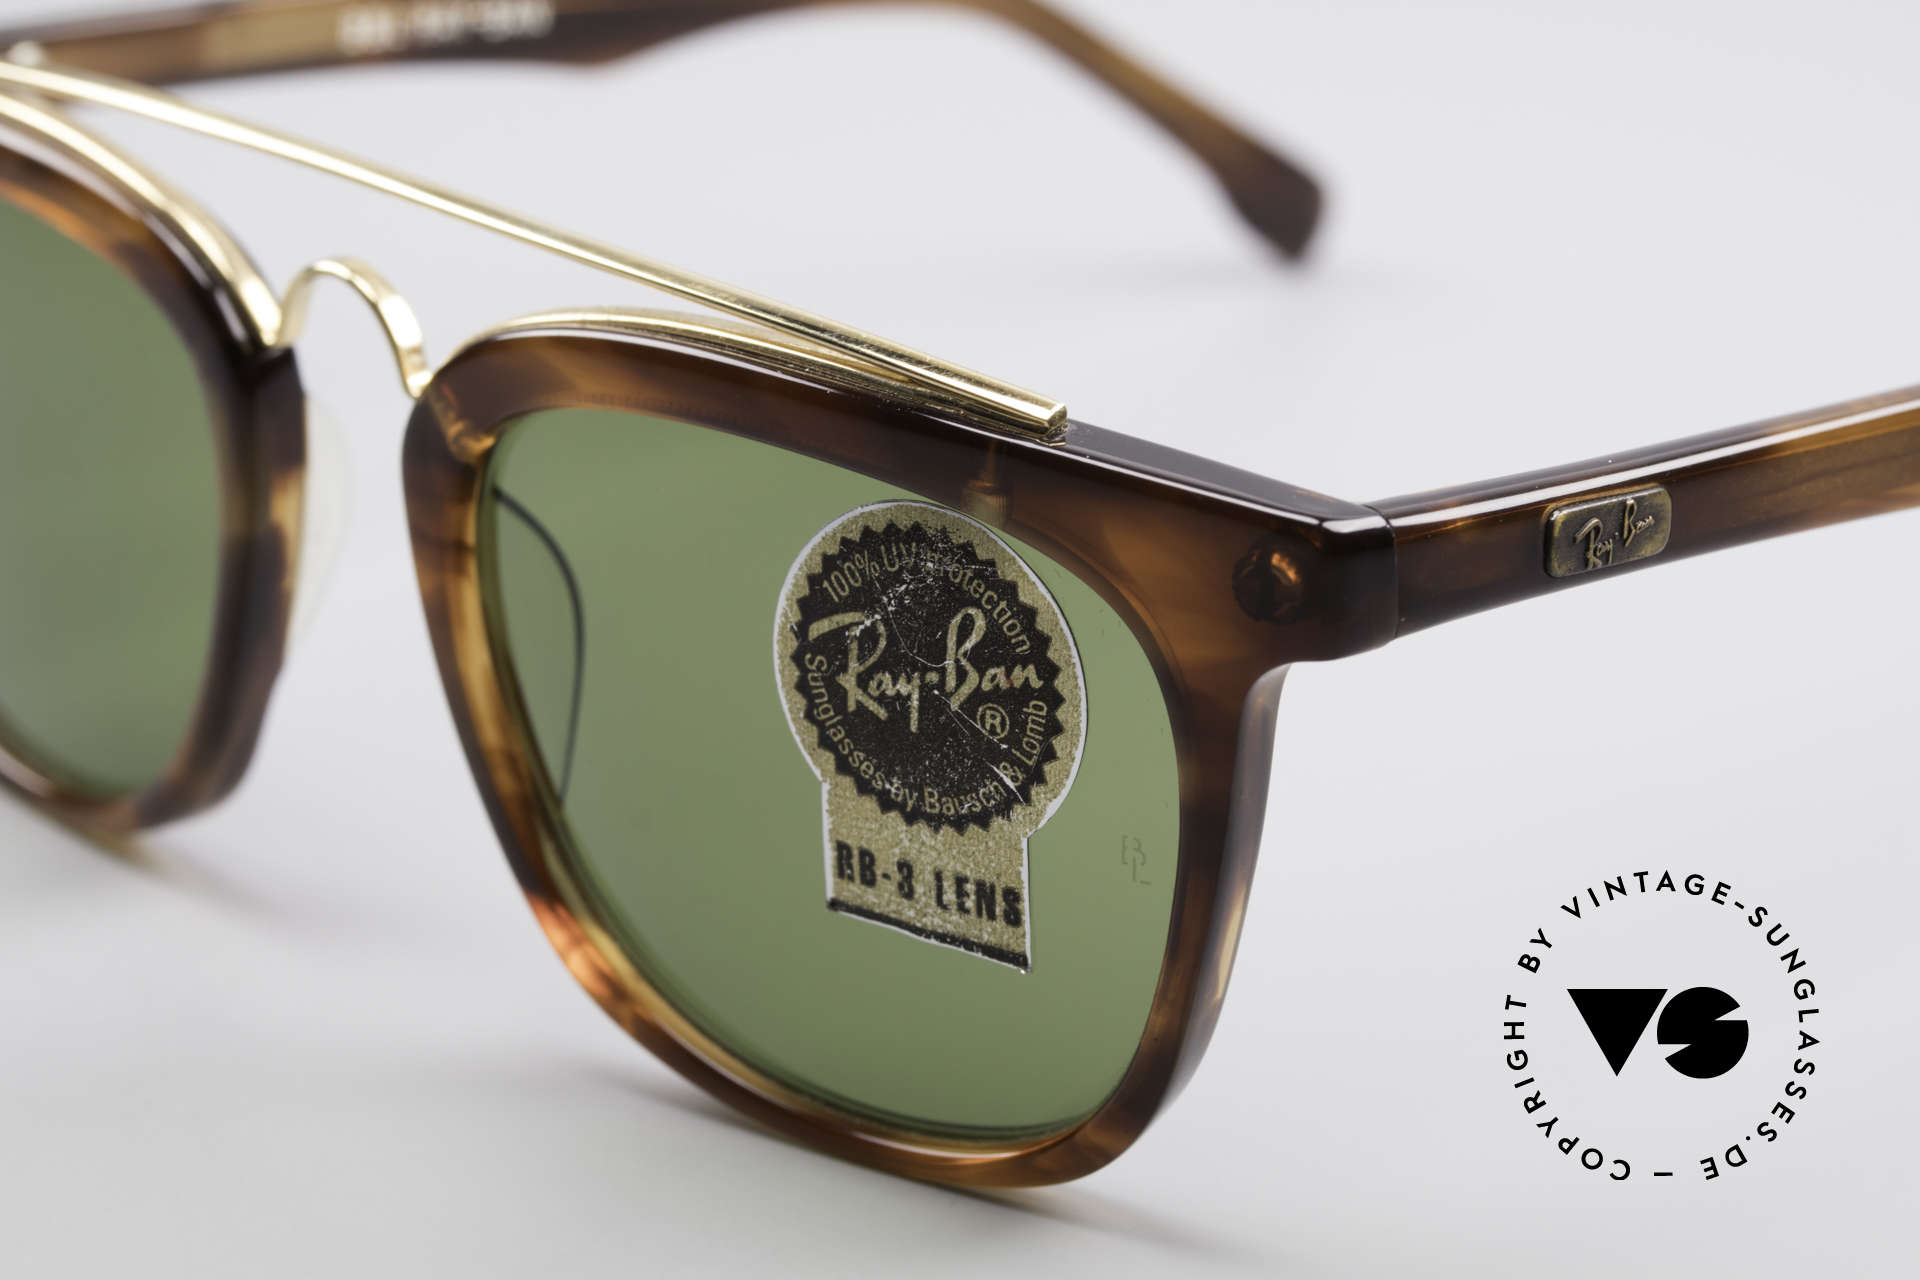 Ray Ban Gatsby Style 5 B&L Bausch Lomb Sunglasses, B&L Bausch & Lomb quality lenses (100% UV), Made for Men and Women